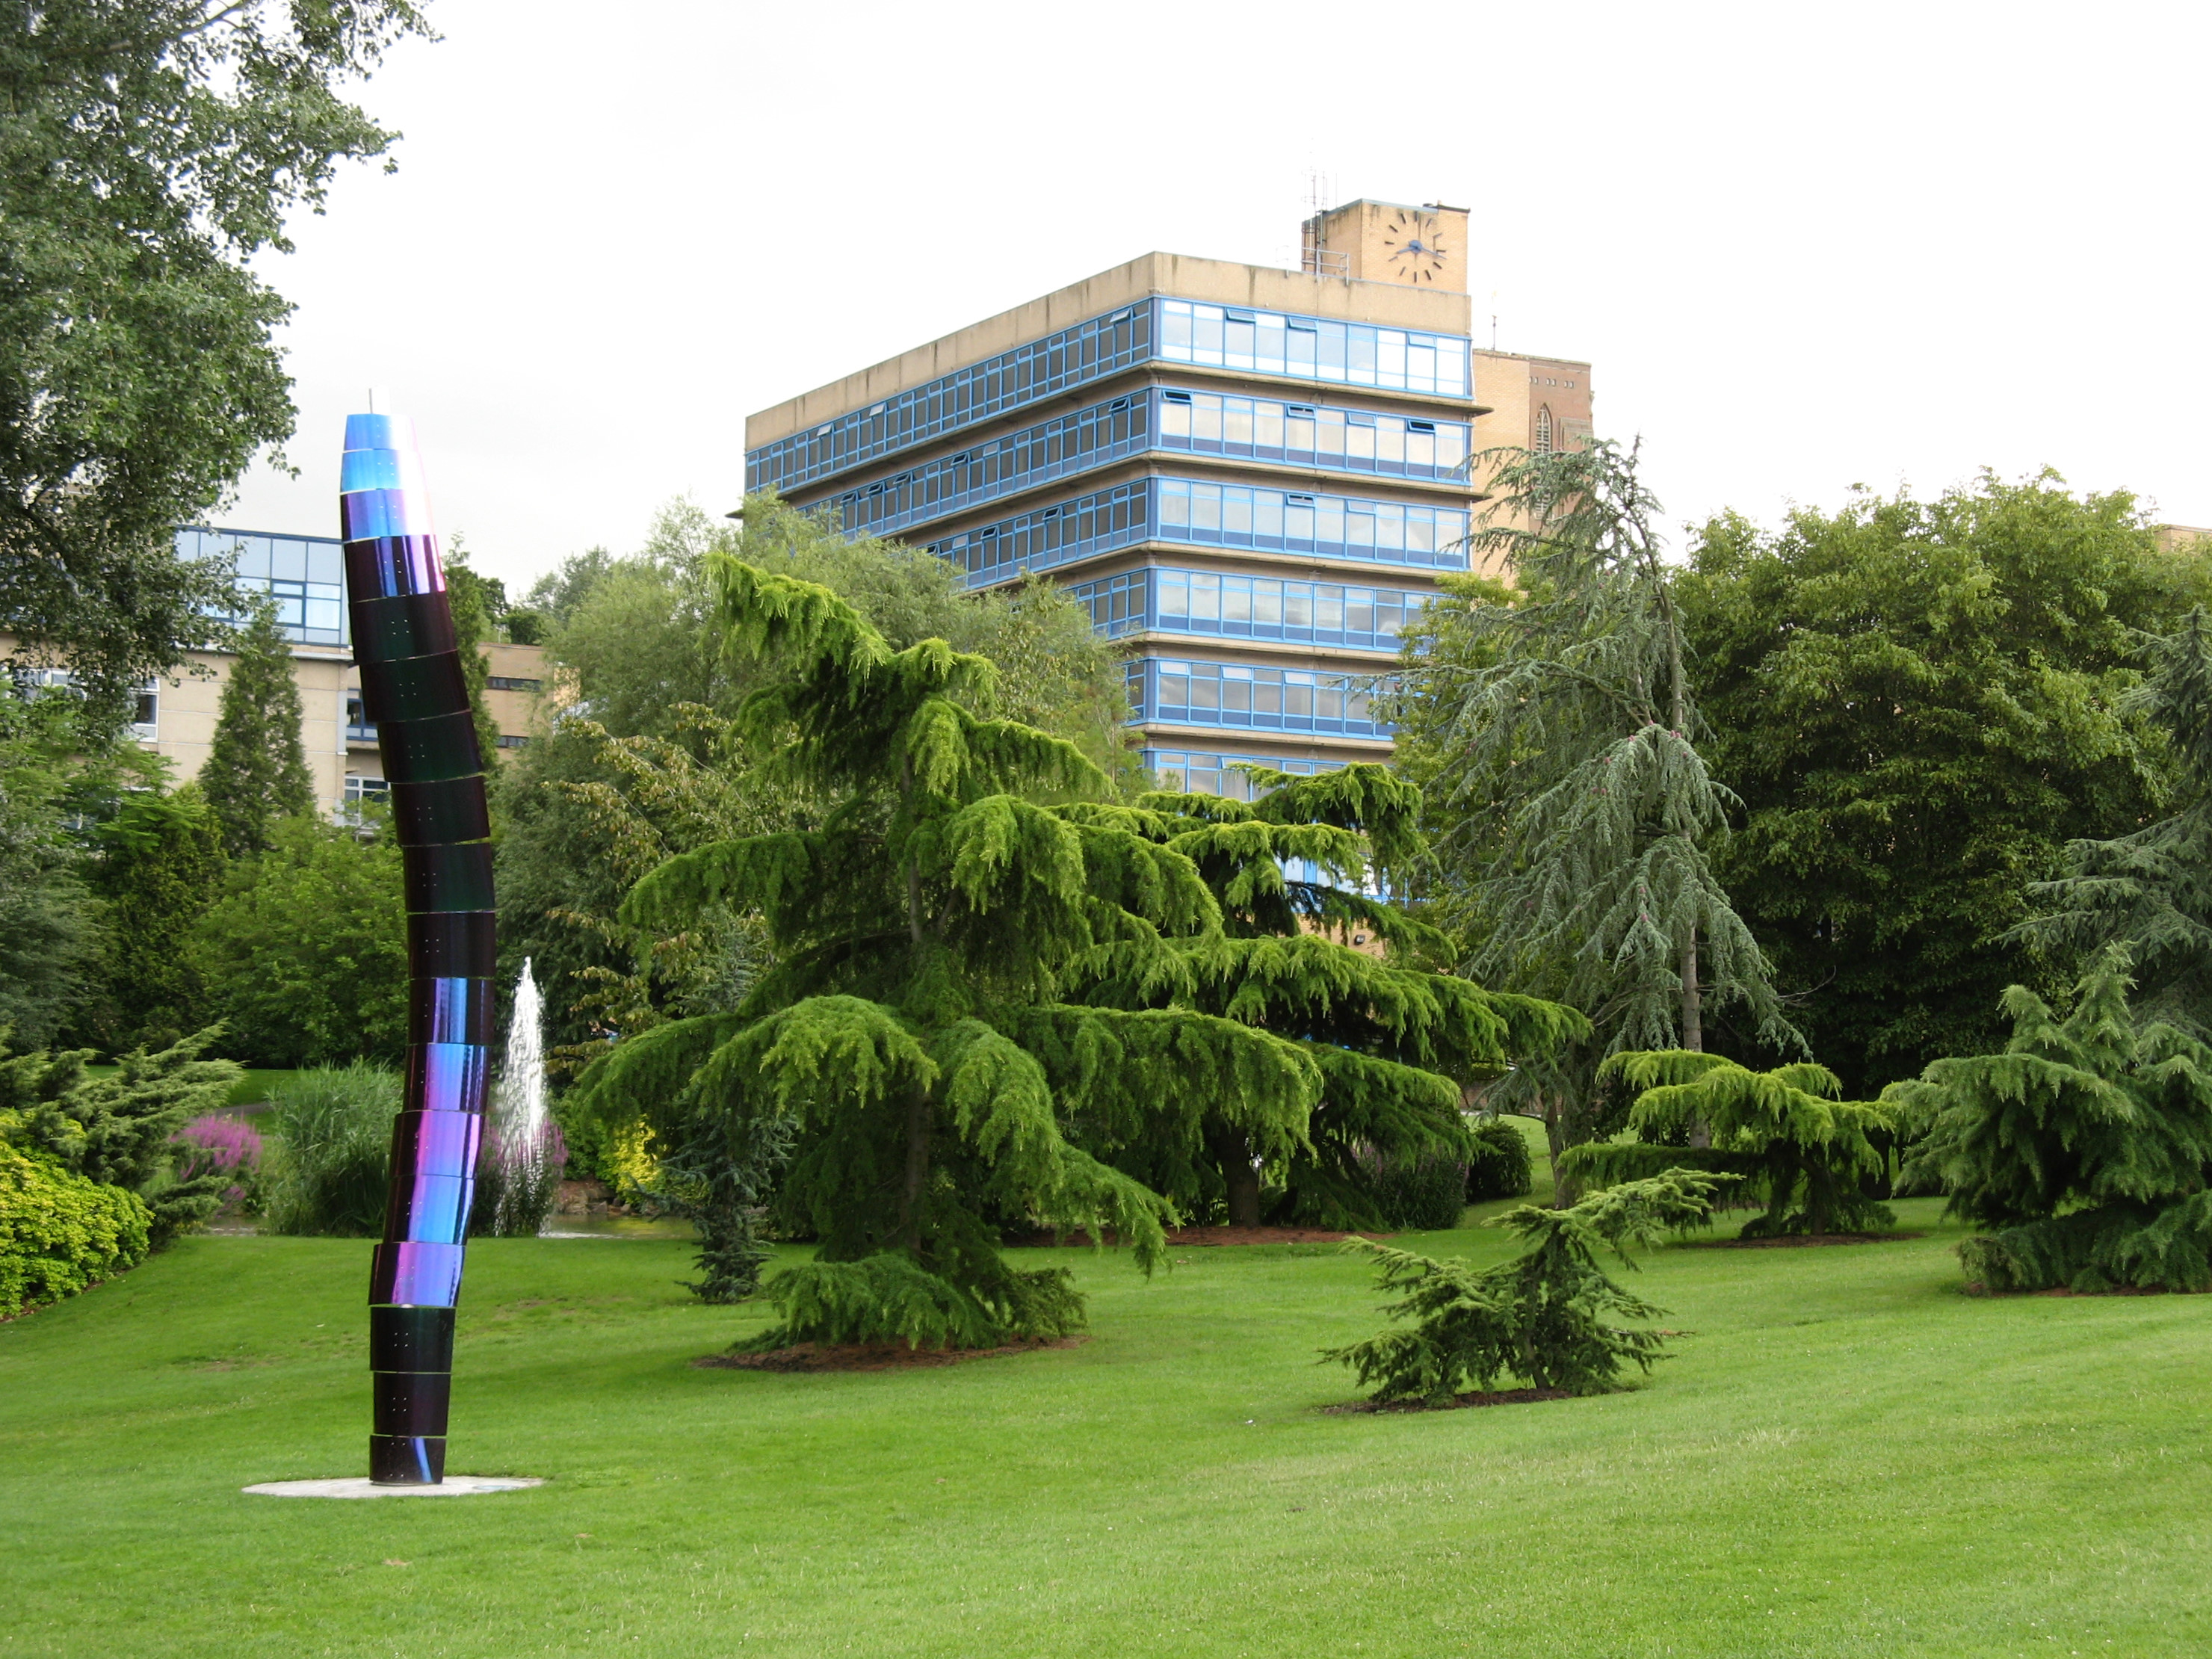 File:Spine (sculpture), University of Surrey.jpg